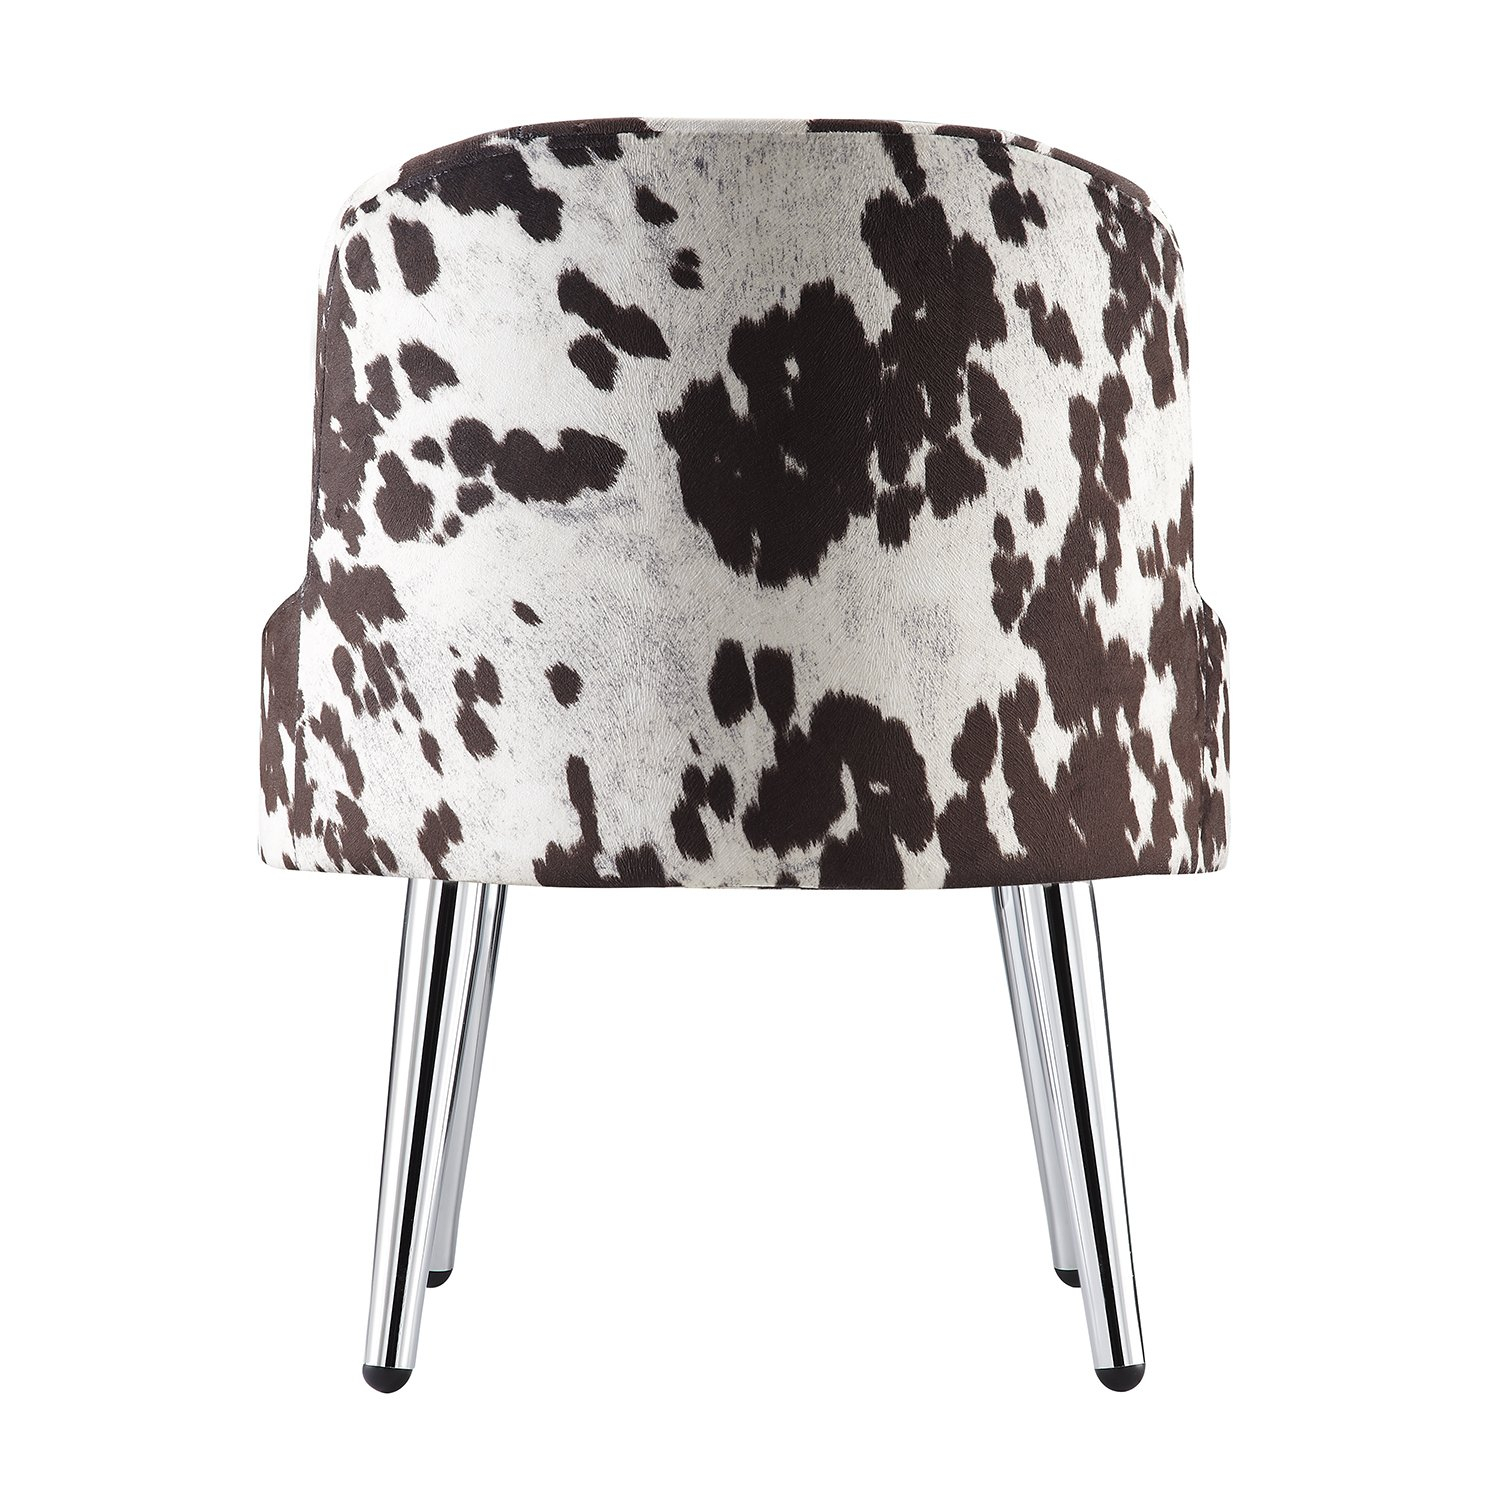 Shop Tribecca Home Bridgeport Ergonomic Contour Cowhide Fabric Intended For Circuit Swivel Accent Chairs (View 16 of 25)